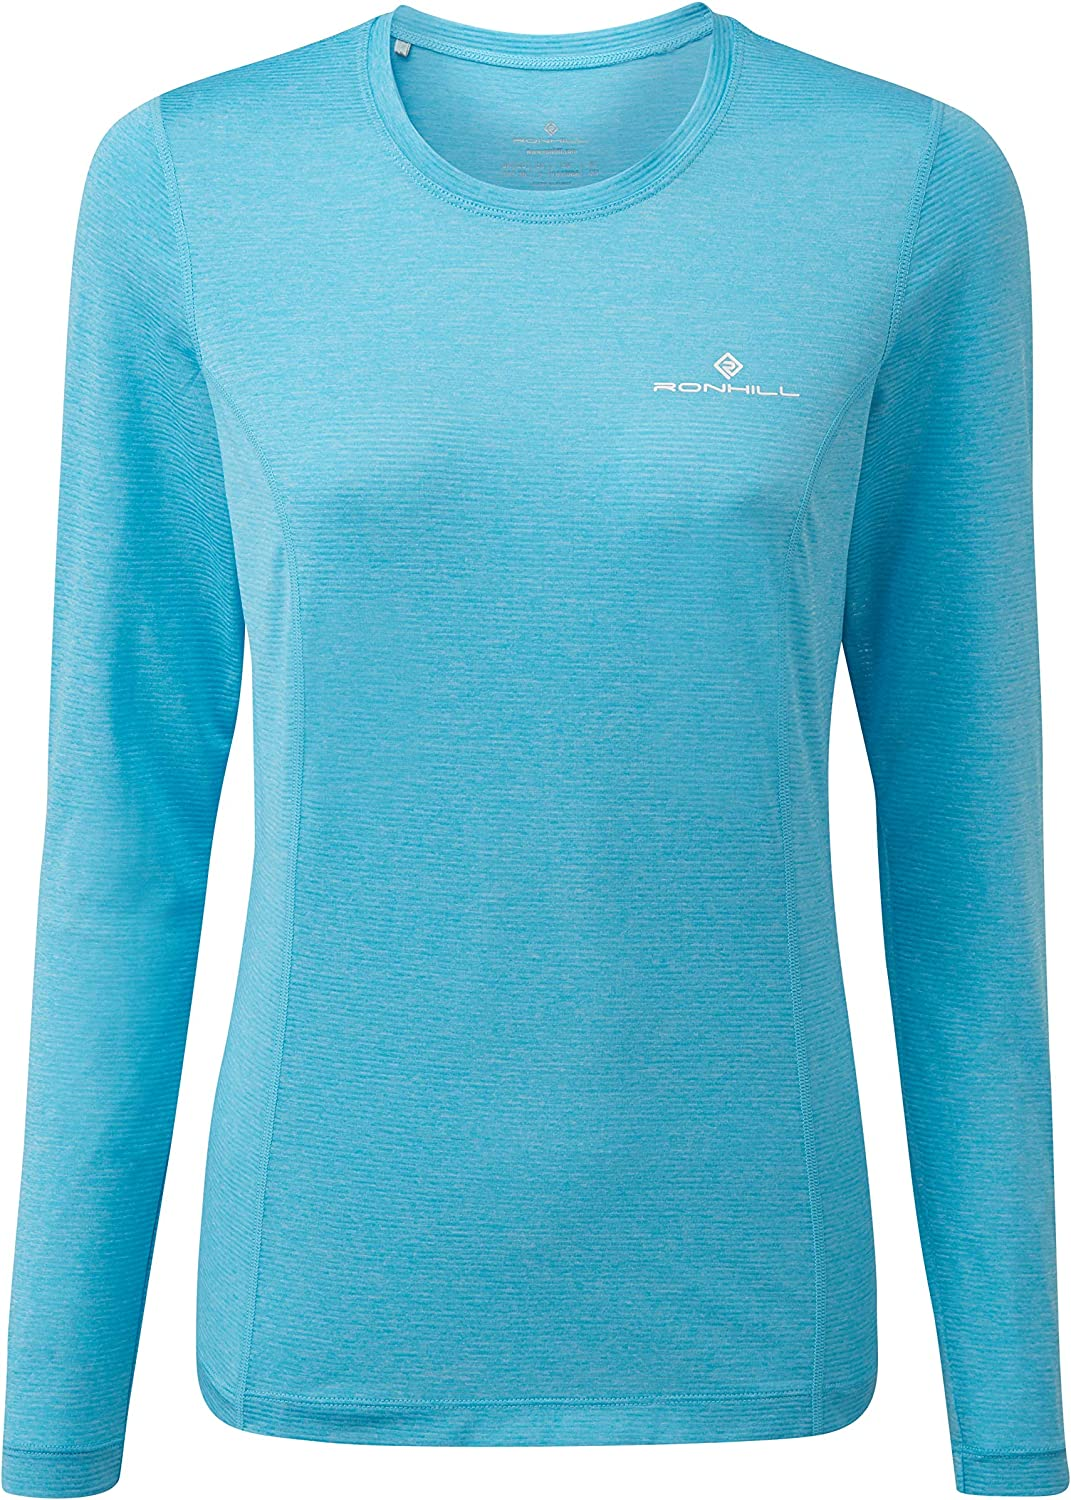 Max 65% OFF Ronhill Women's Stride Tee Long-Sleeve Max 50% OFF